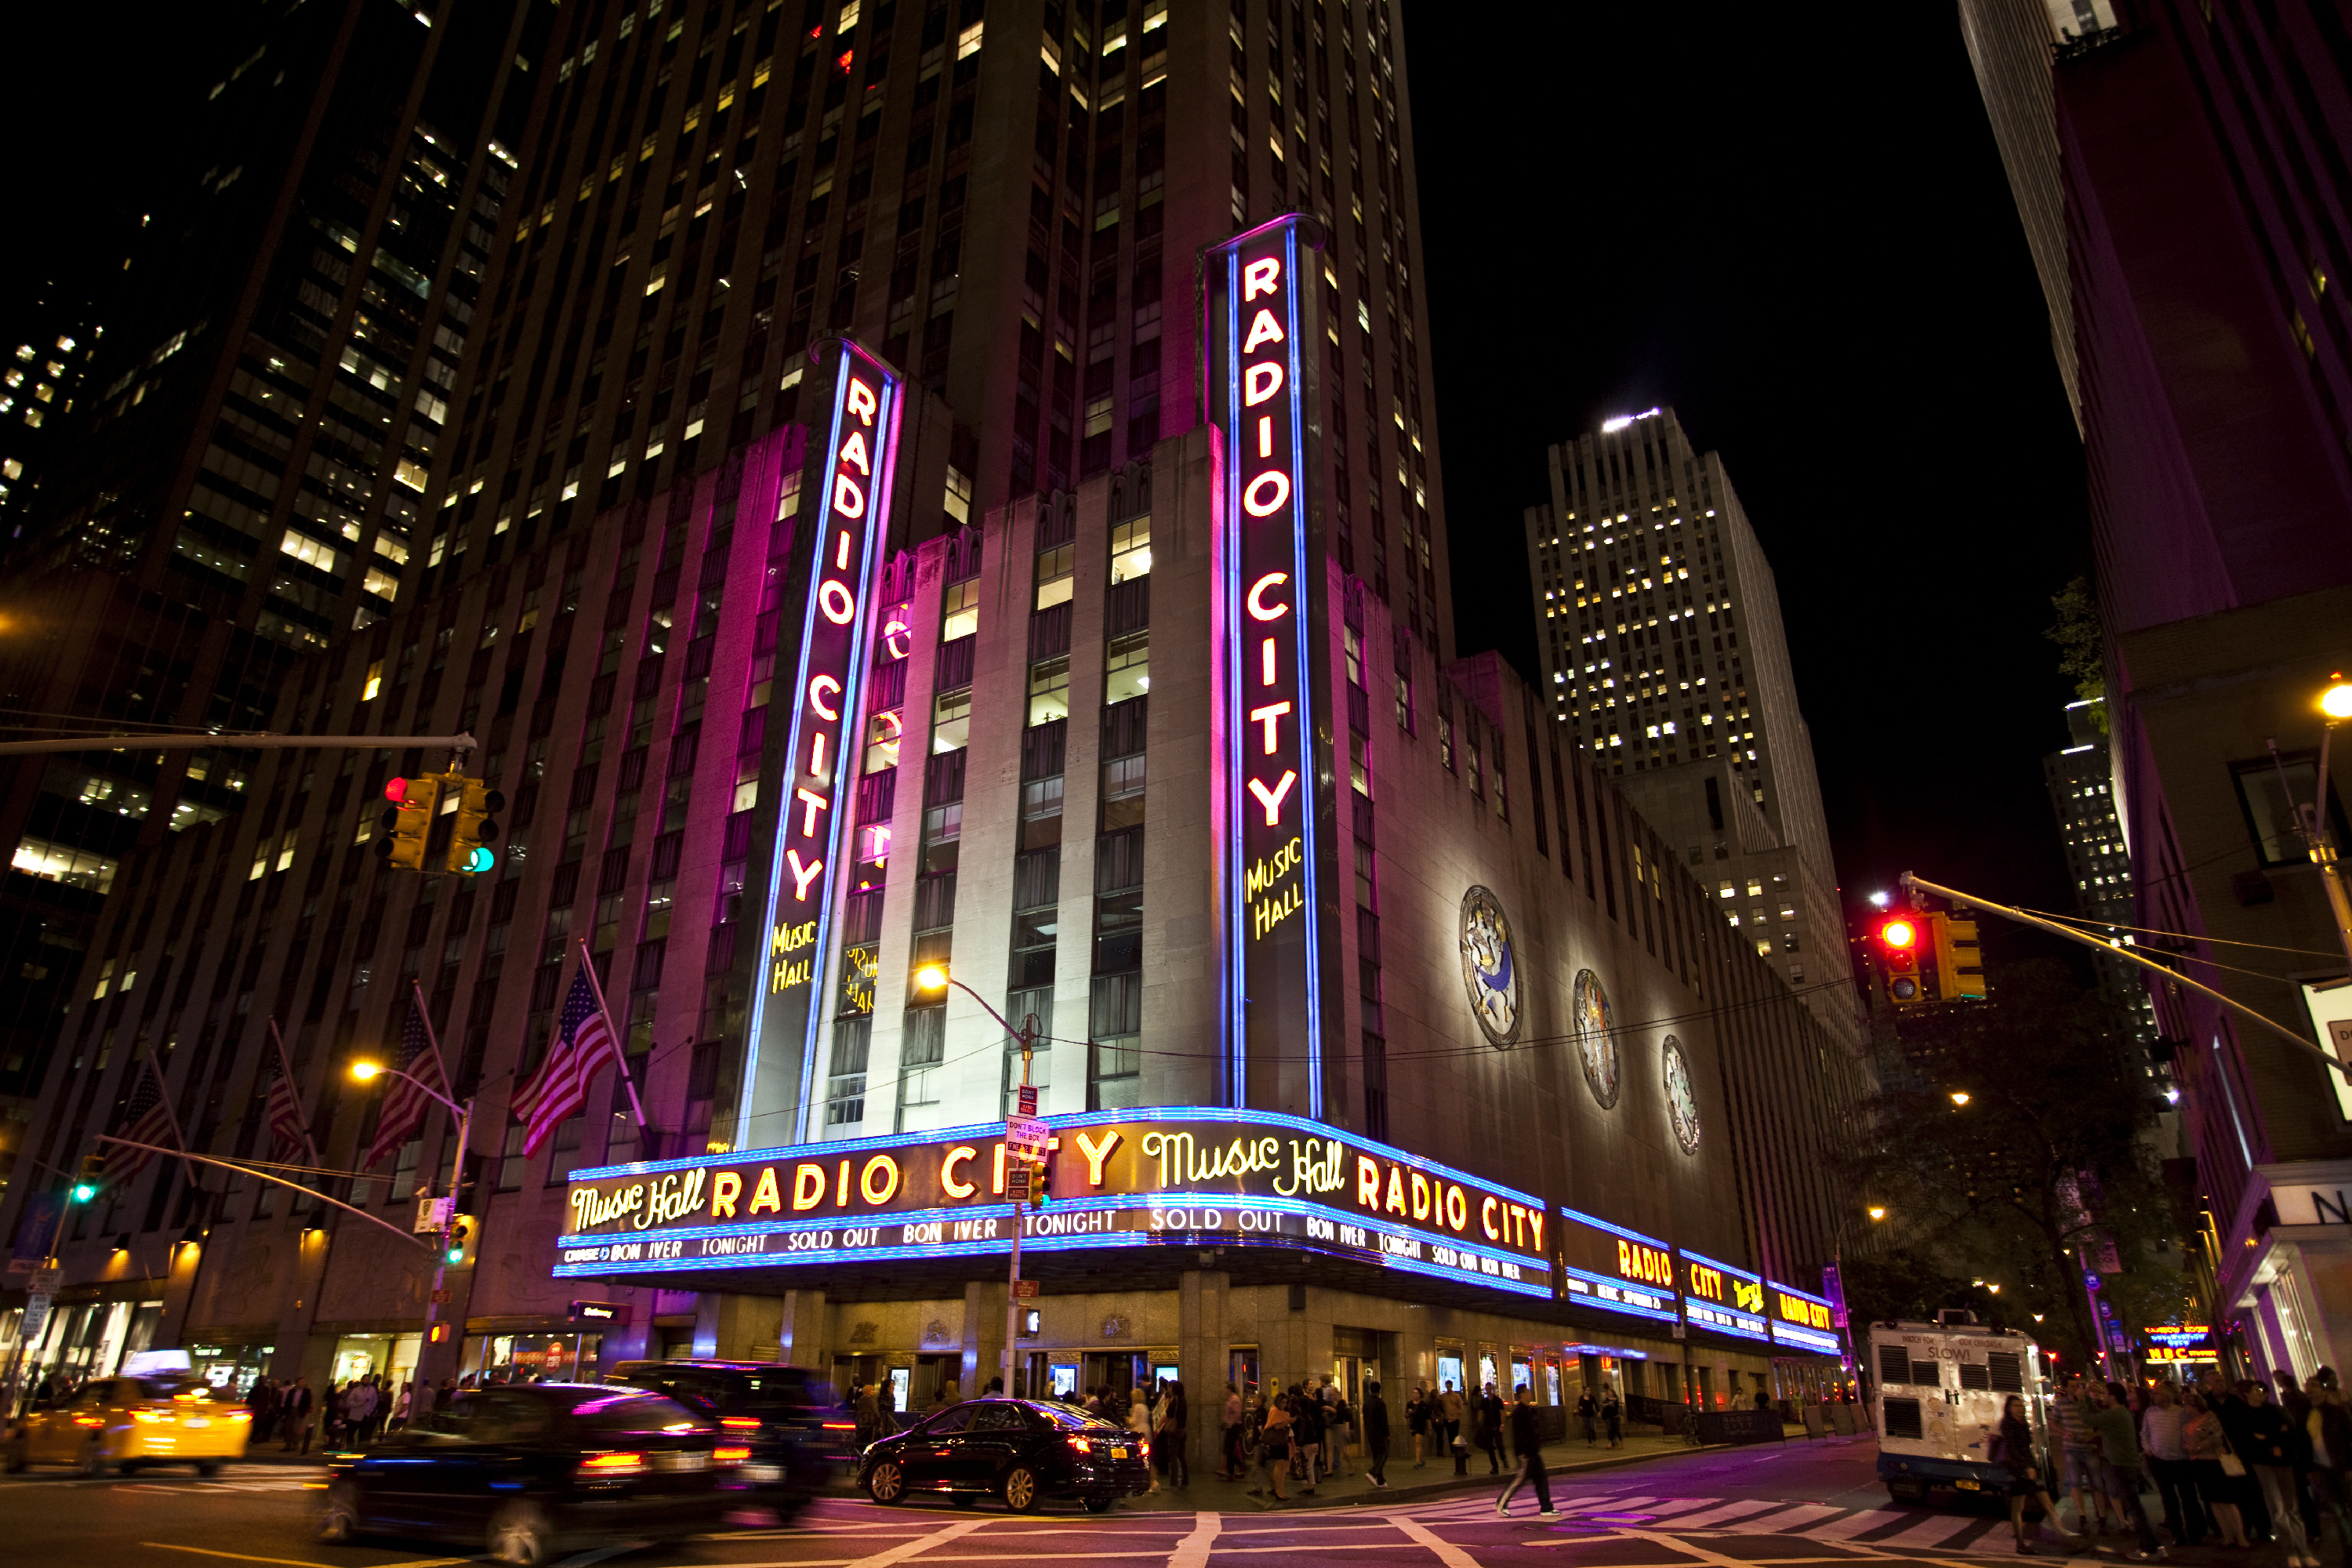 New York attractions: Radio City Music Hall (slide show)